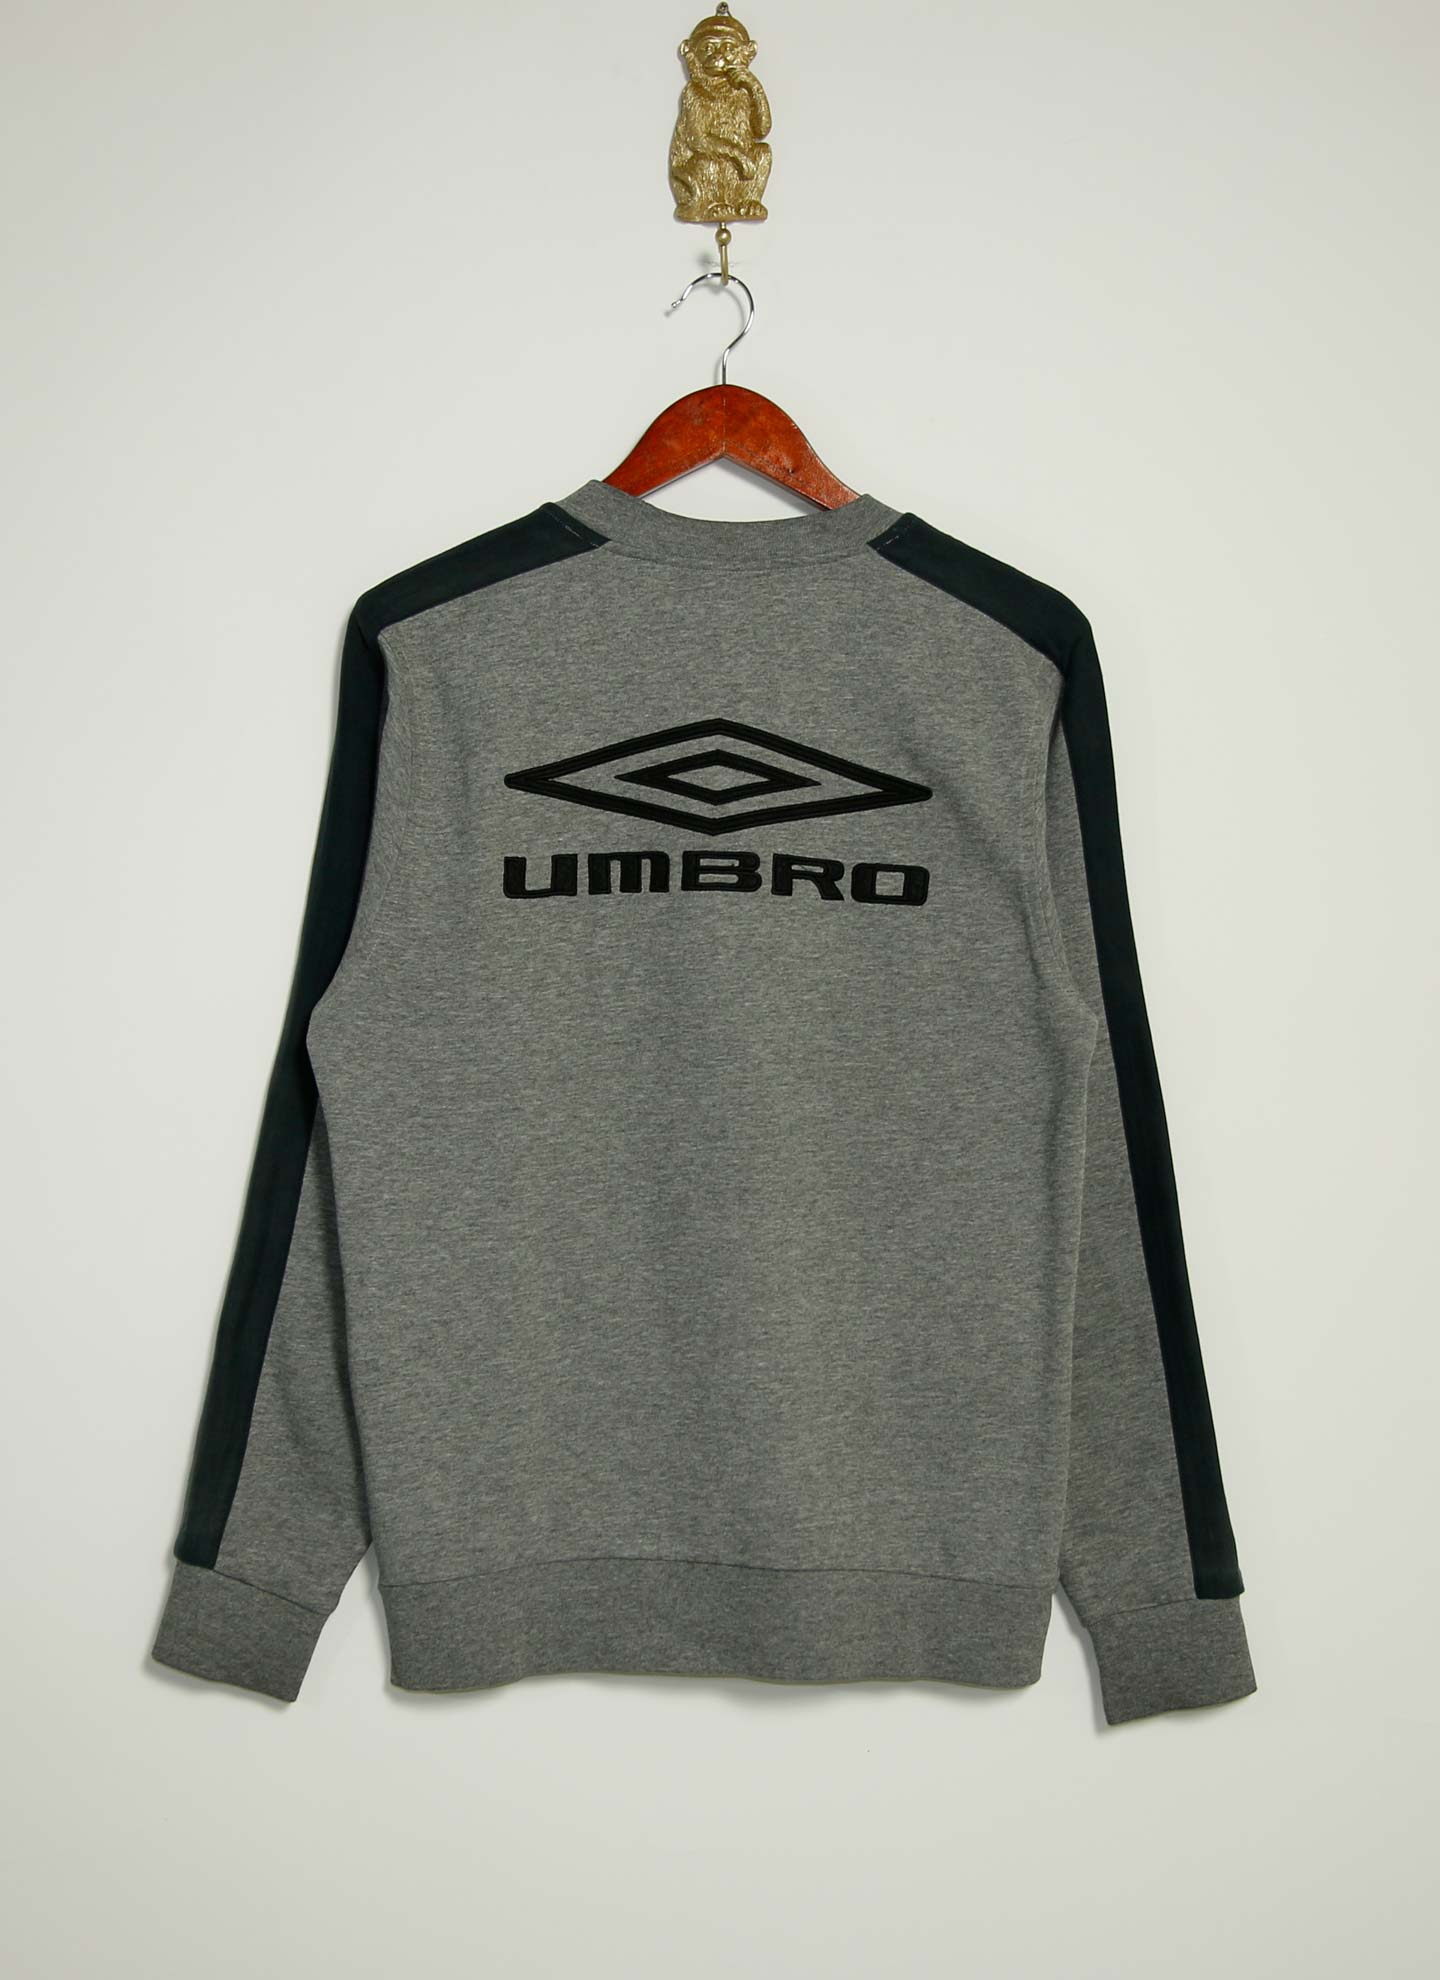 Umbro Sweatshirt